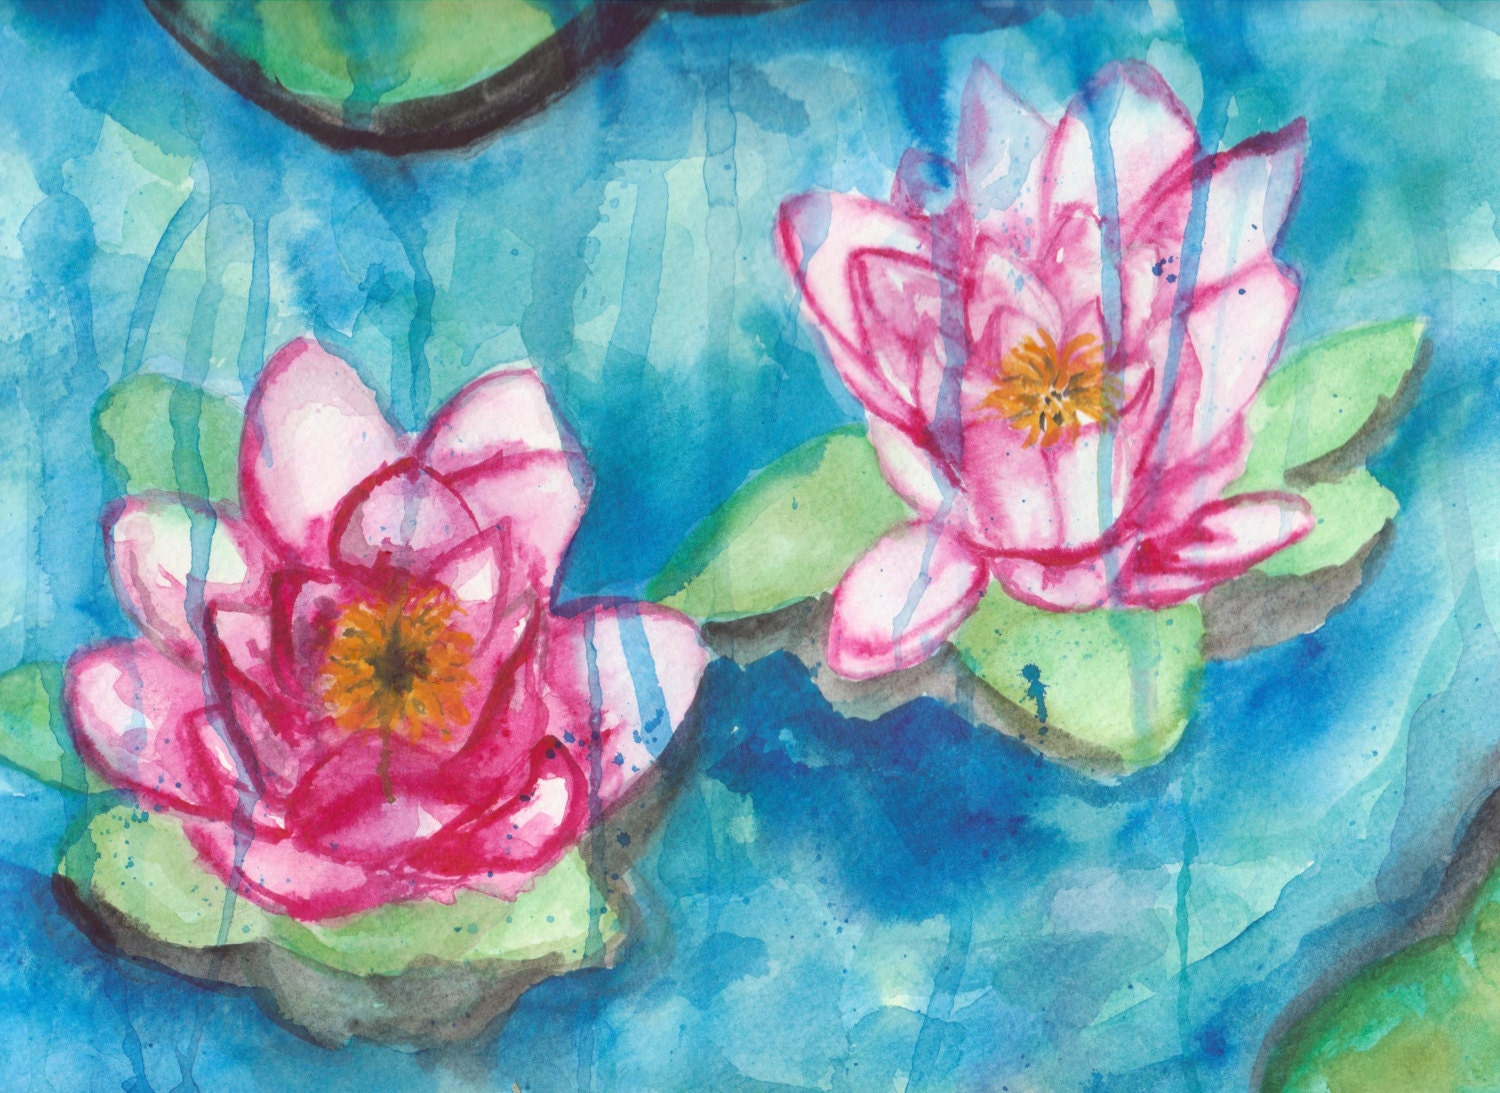 Lotus Flowers in the Rain - Watercolor Painting - Affordable art -SamIamArt - SamIamArt